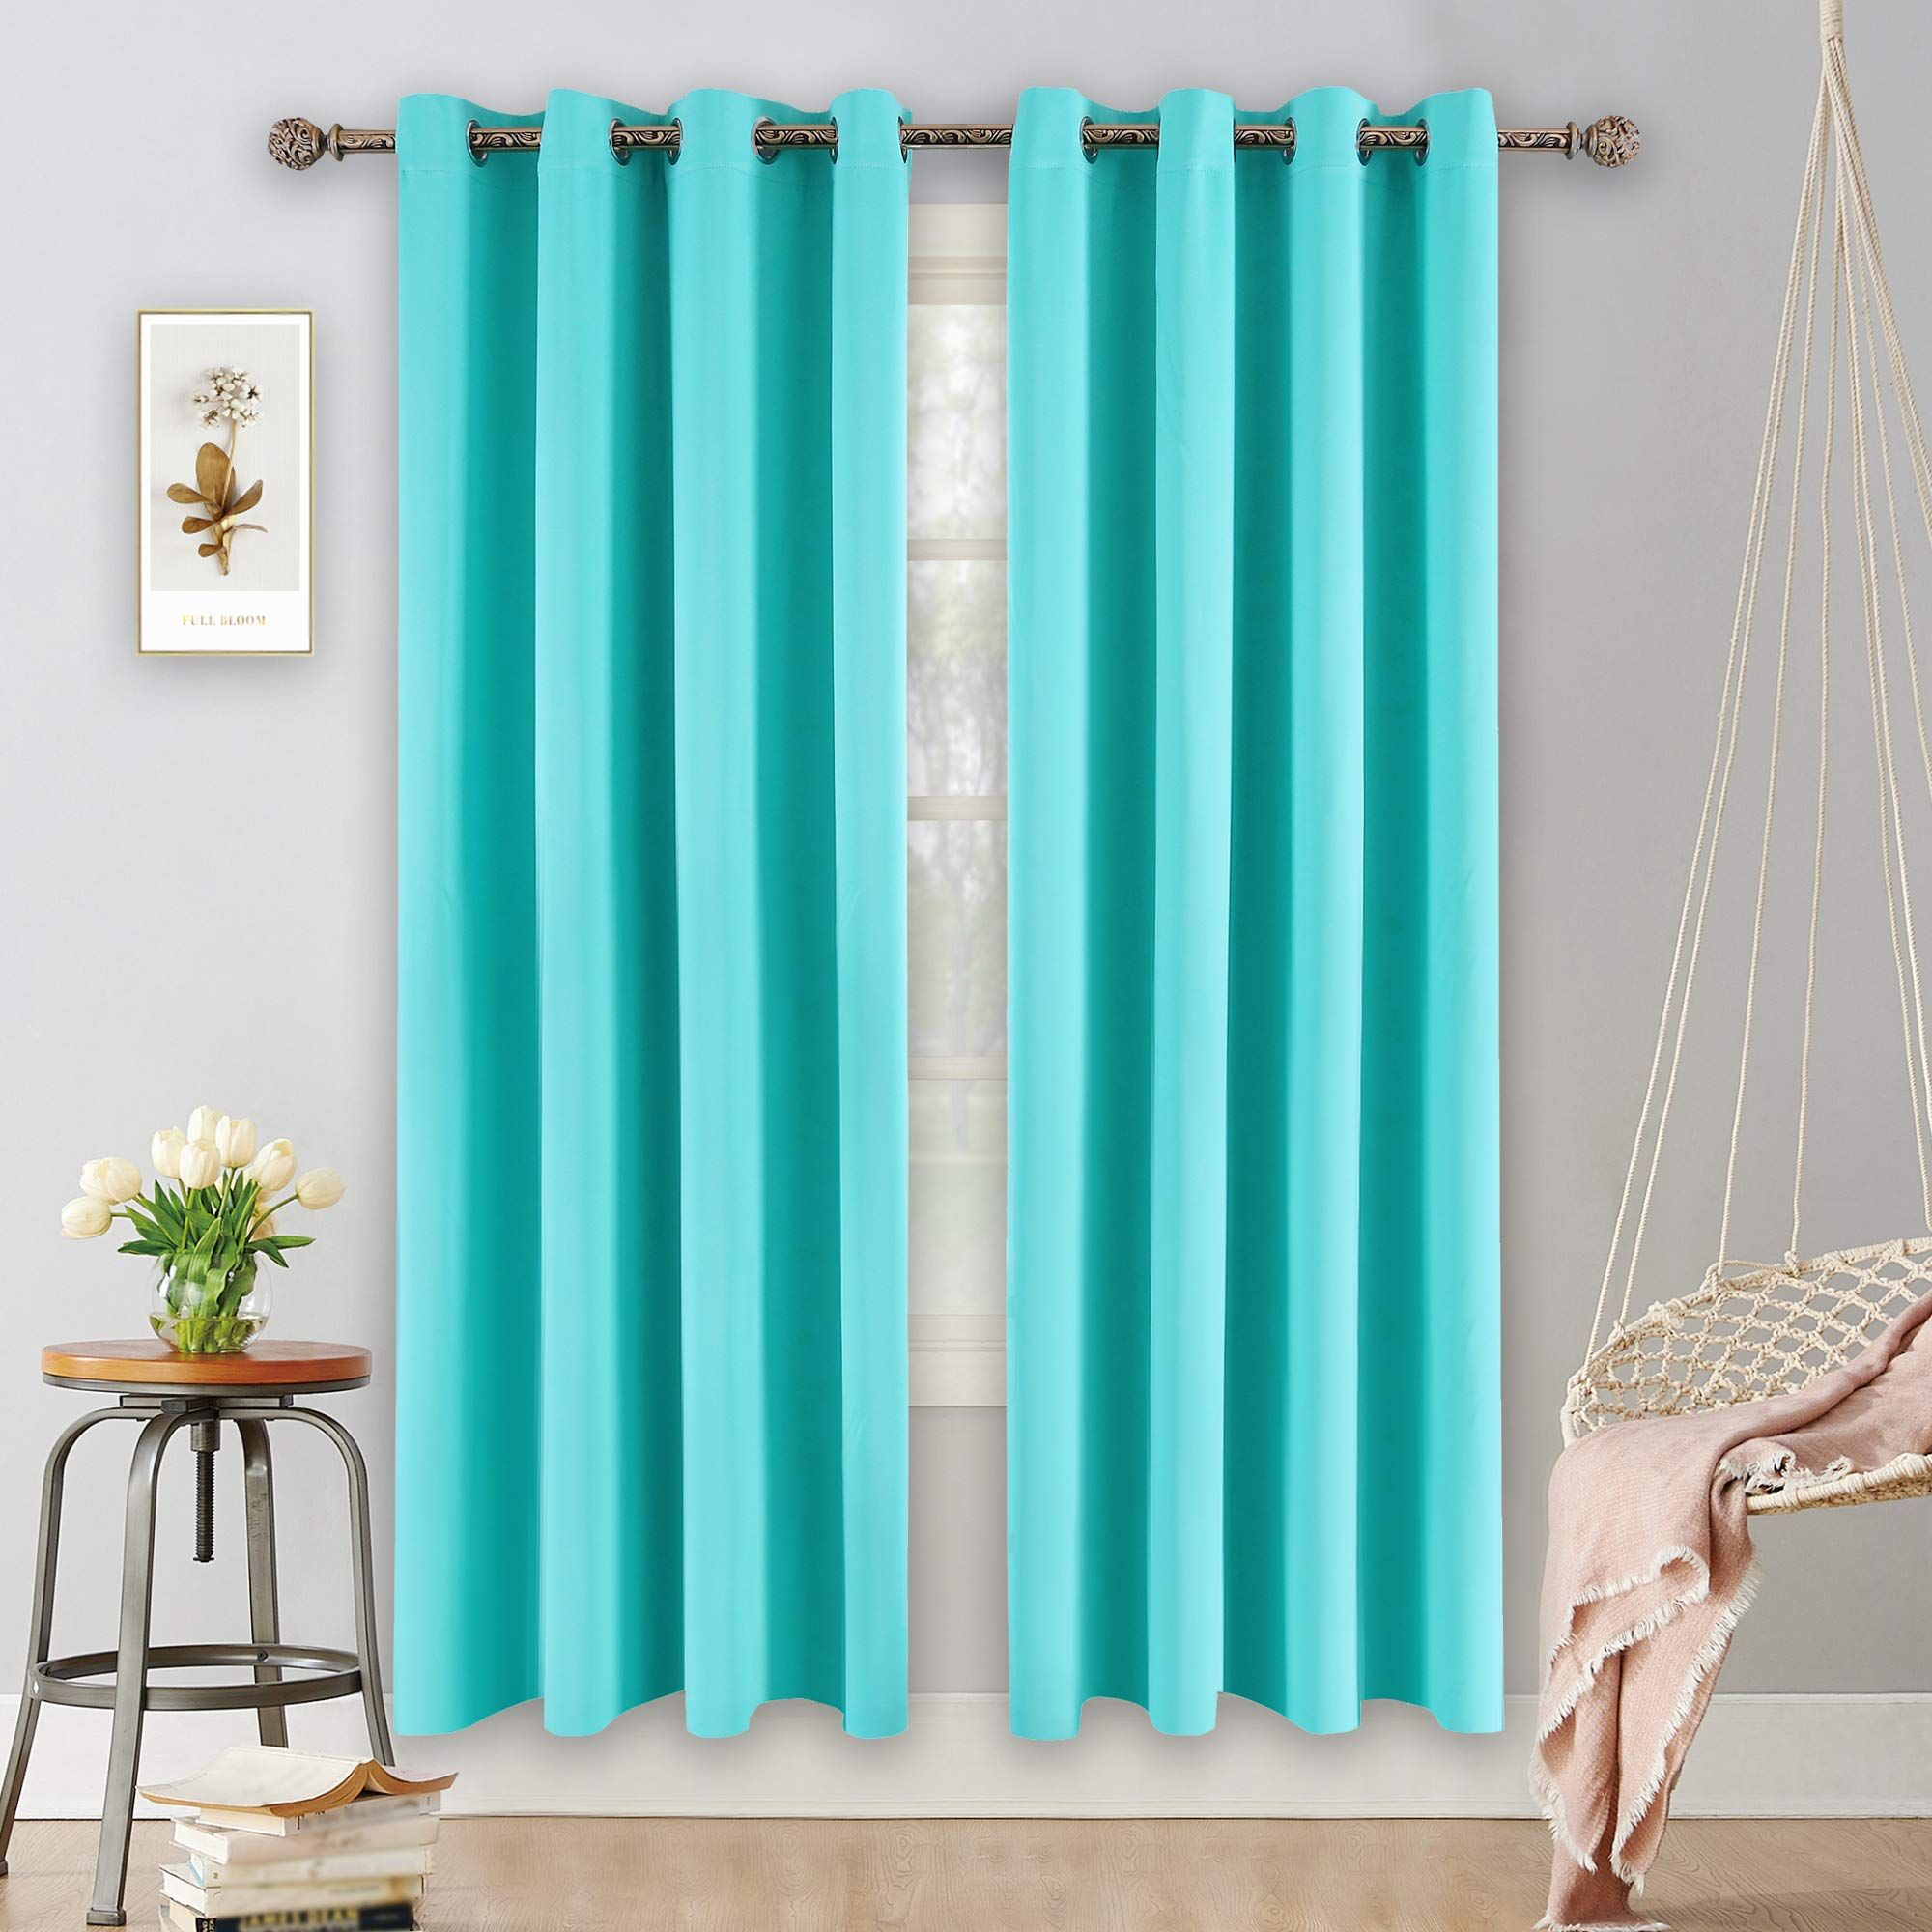 Ygo Turquoise Curtains For Bedroom Living Room Thermal Insulated Innovated M In 2020 Insulated Curtains Insulated Blackout Curtains Thermal Insulated Blackout Curtains